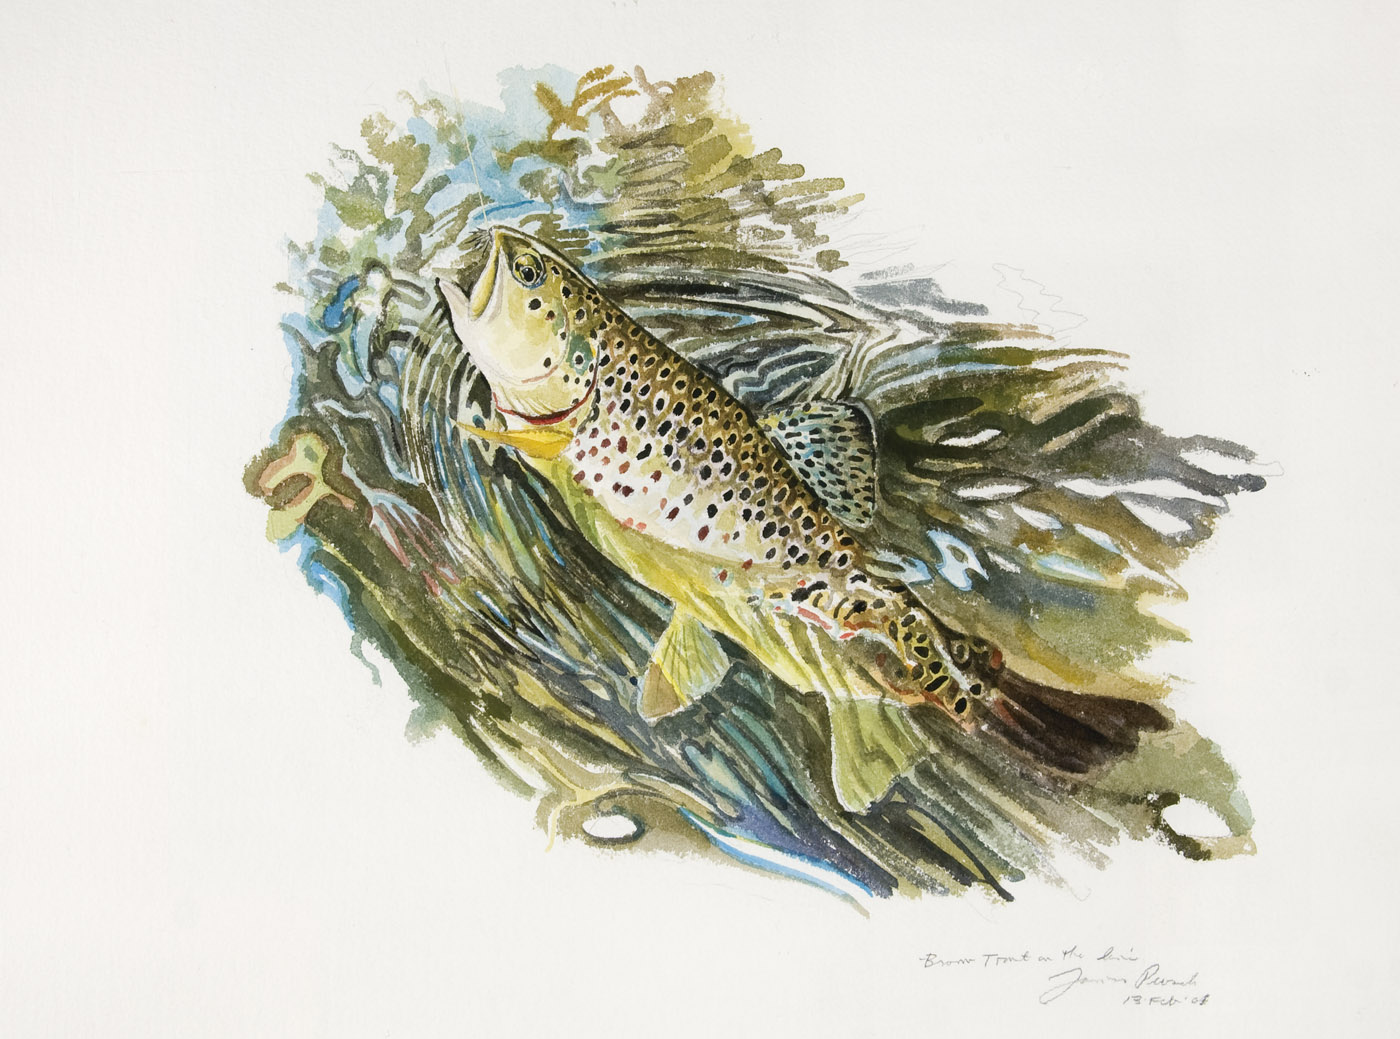 James Prosek Brown Trout on Line James Prosek: The Audubon of Fish